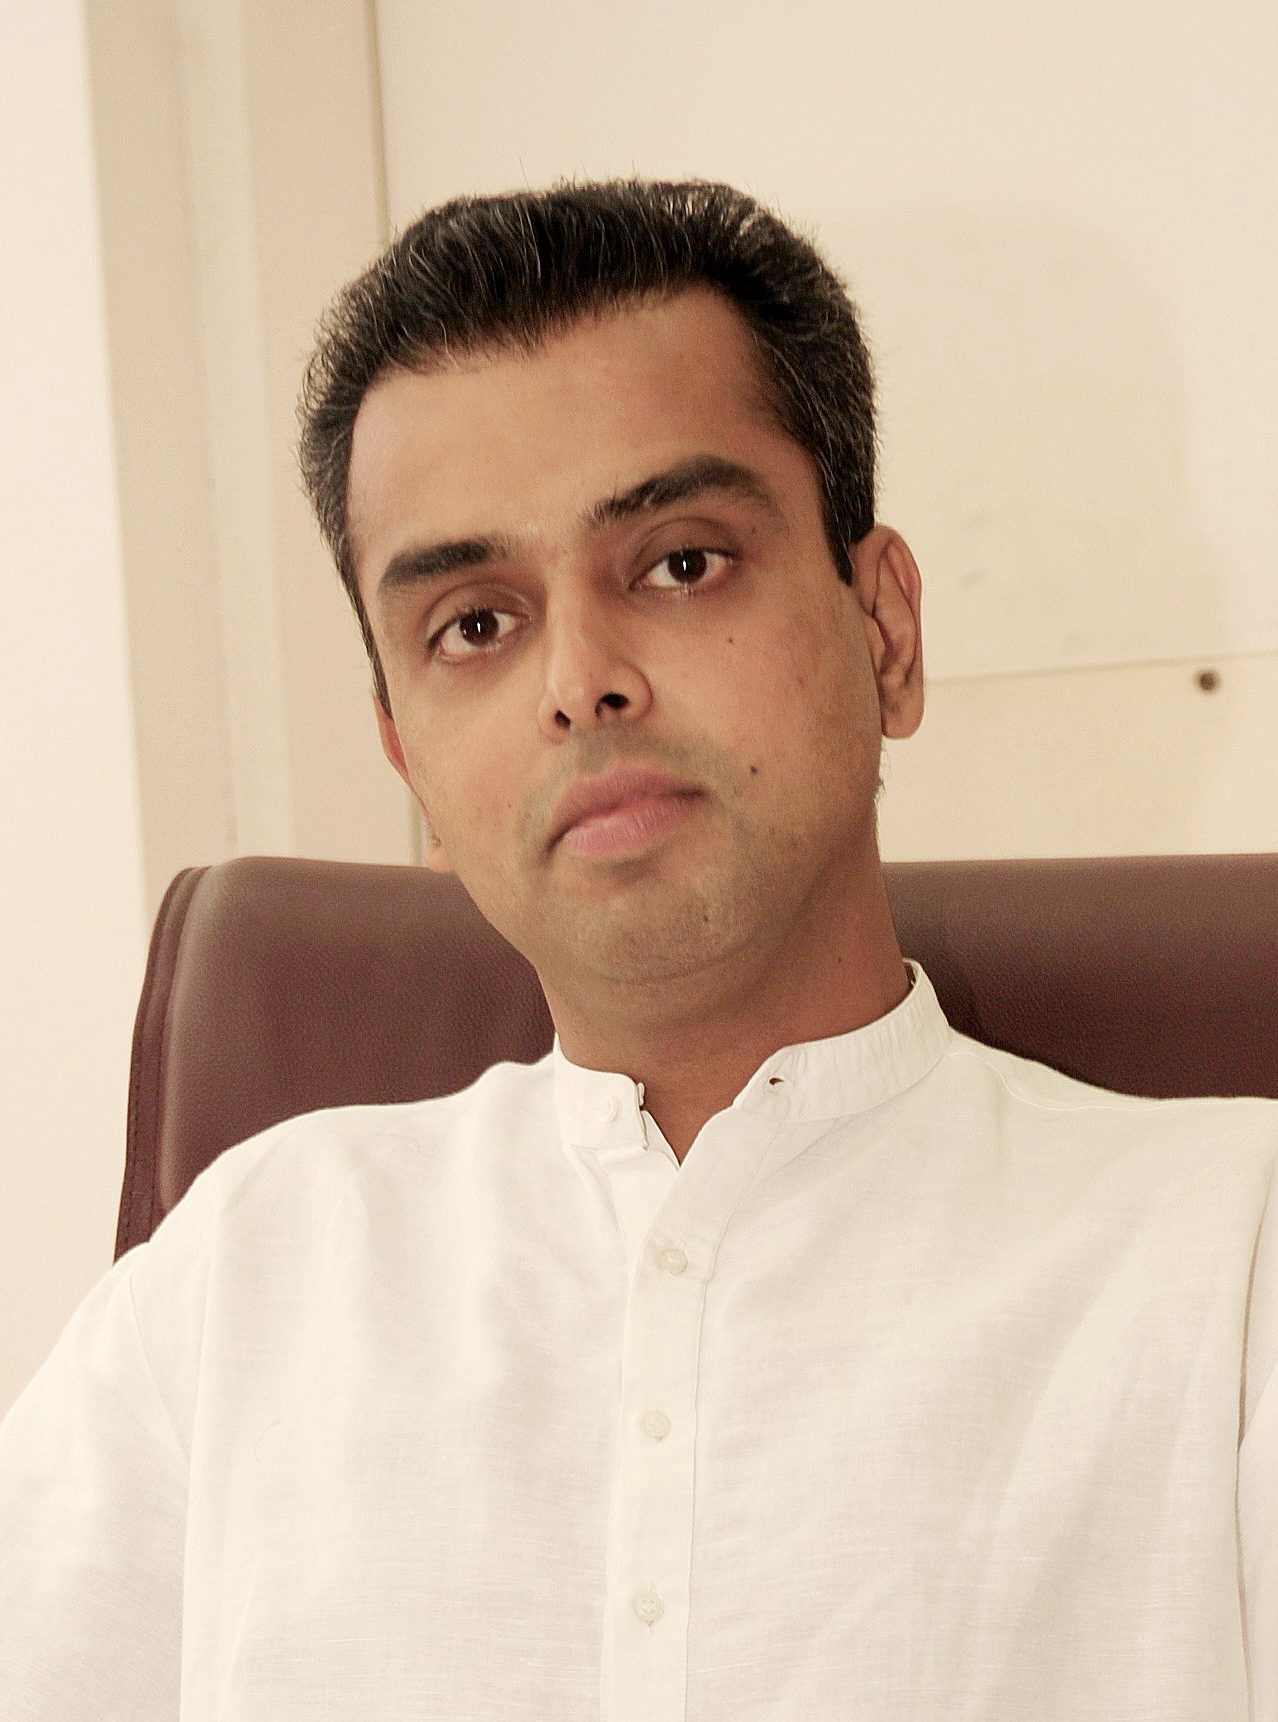 Miland Deora, minister of state for telecom at his office in New Delhi. Photo by Shome Basu